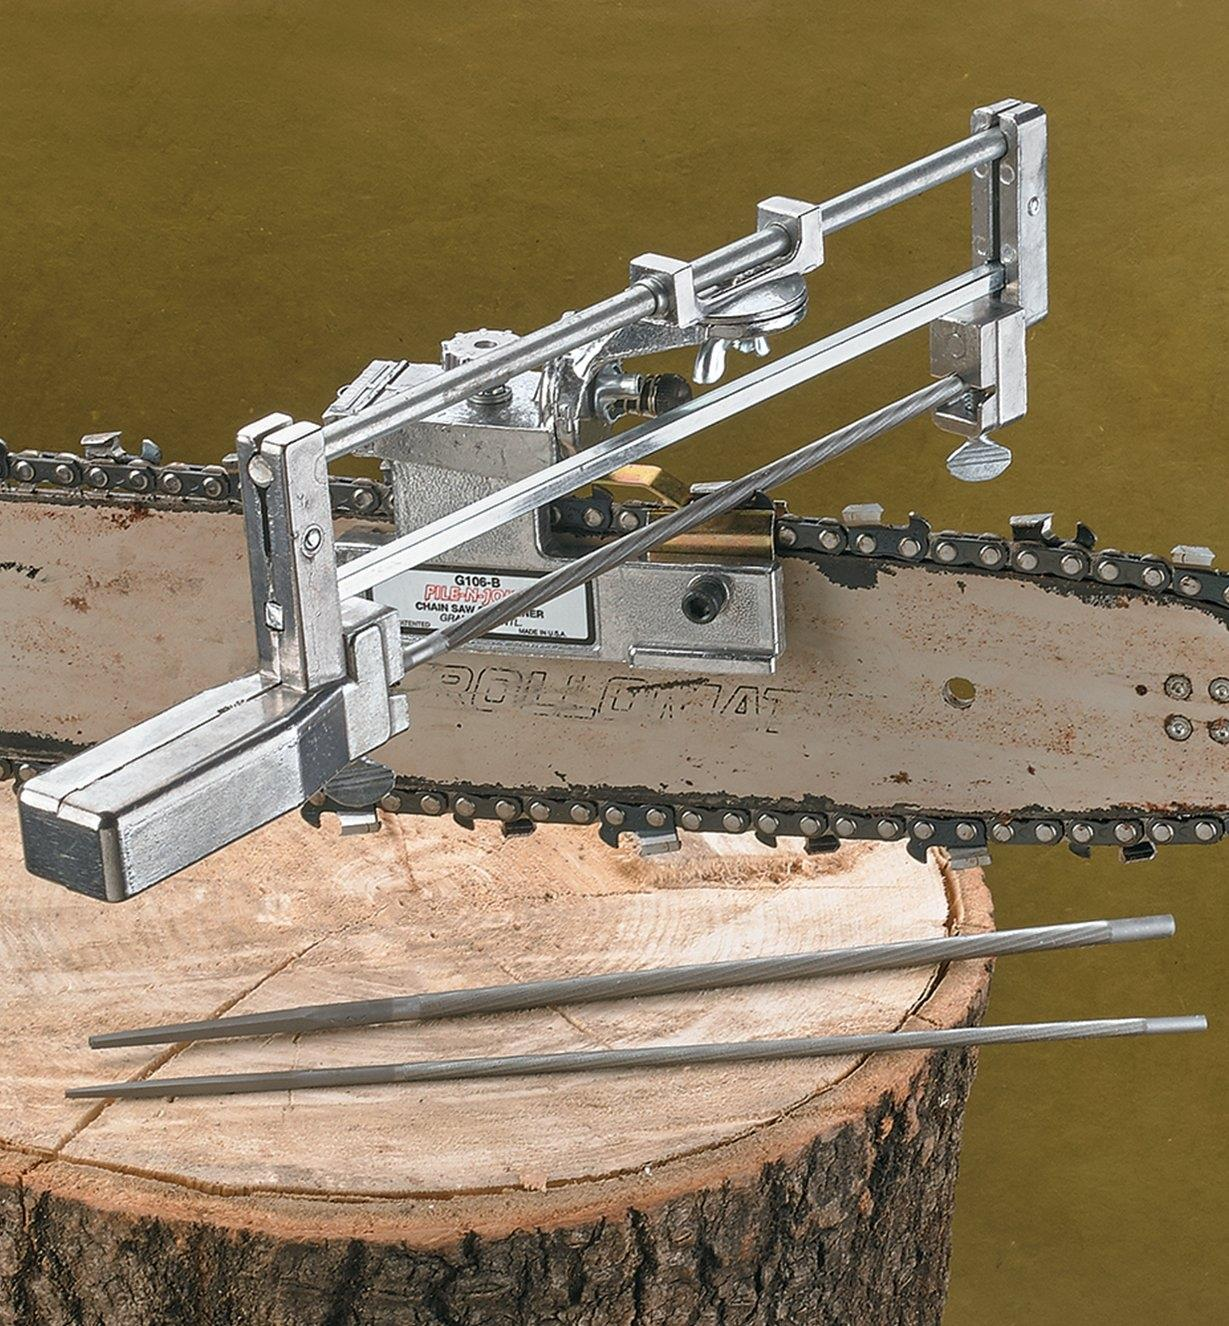 Deluxe Chain-Saw Sharpener clamped to a chain-saw bar